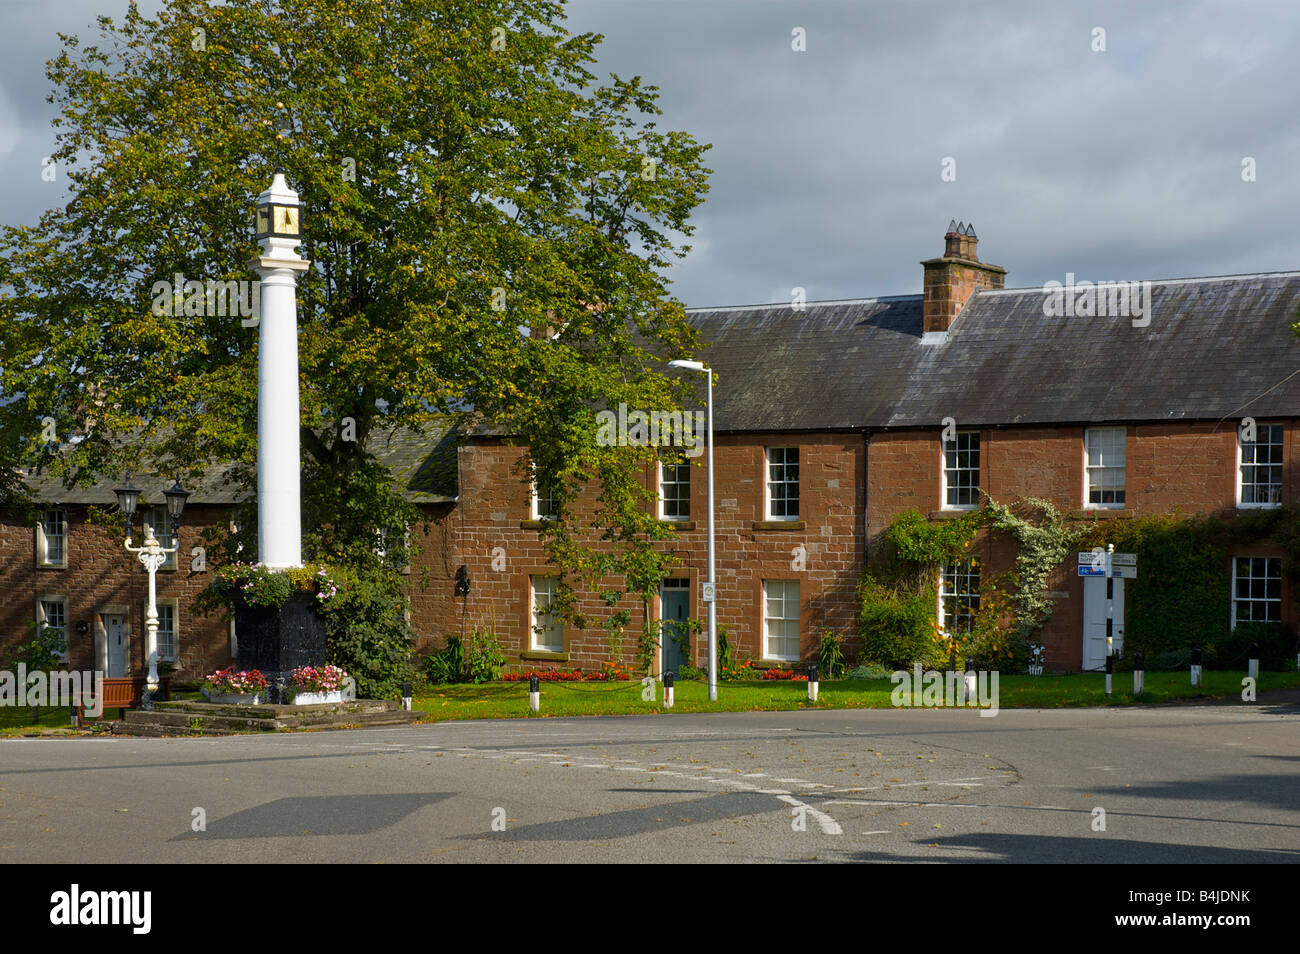 High Cross and traditional sandstone houses, at the top of Boroughgate, Appleby, Eden Valley, Cumbria, England UK - Stock Image